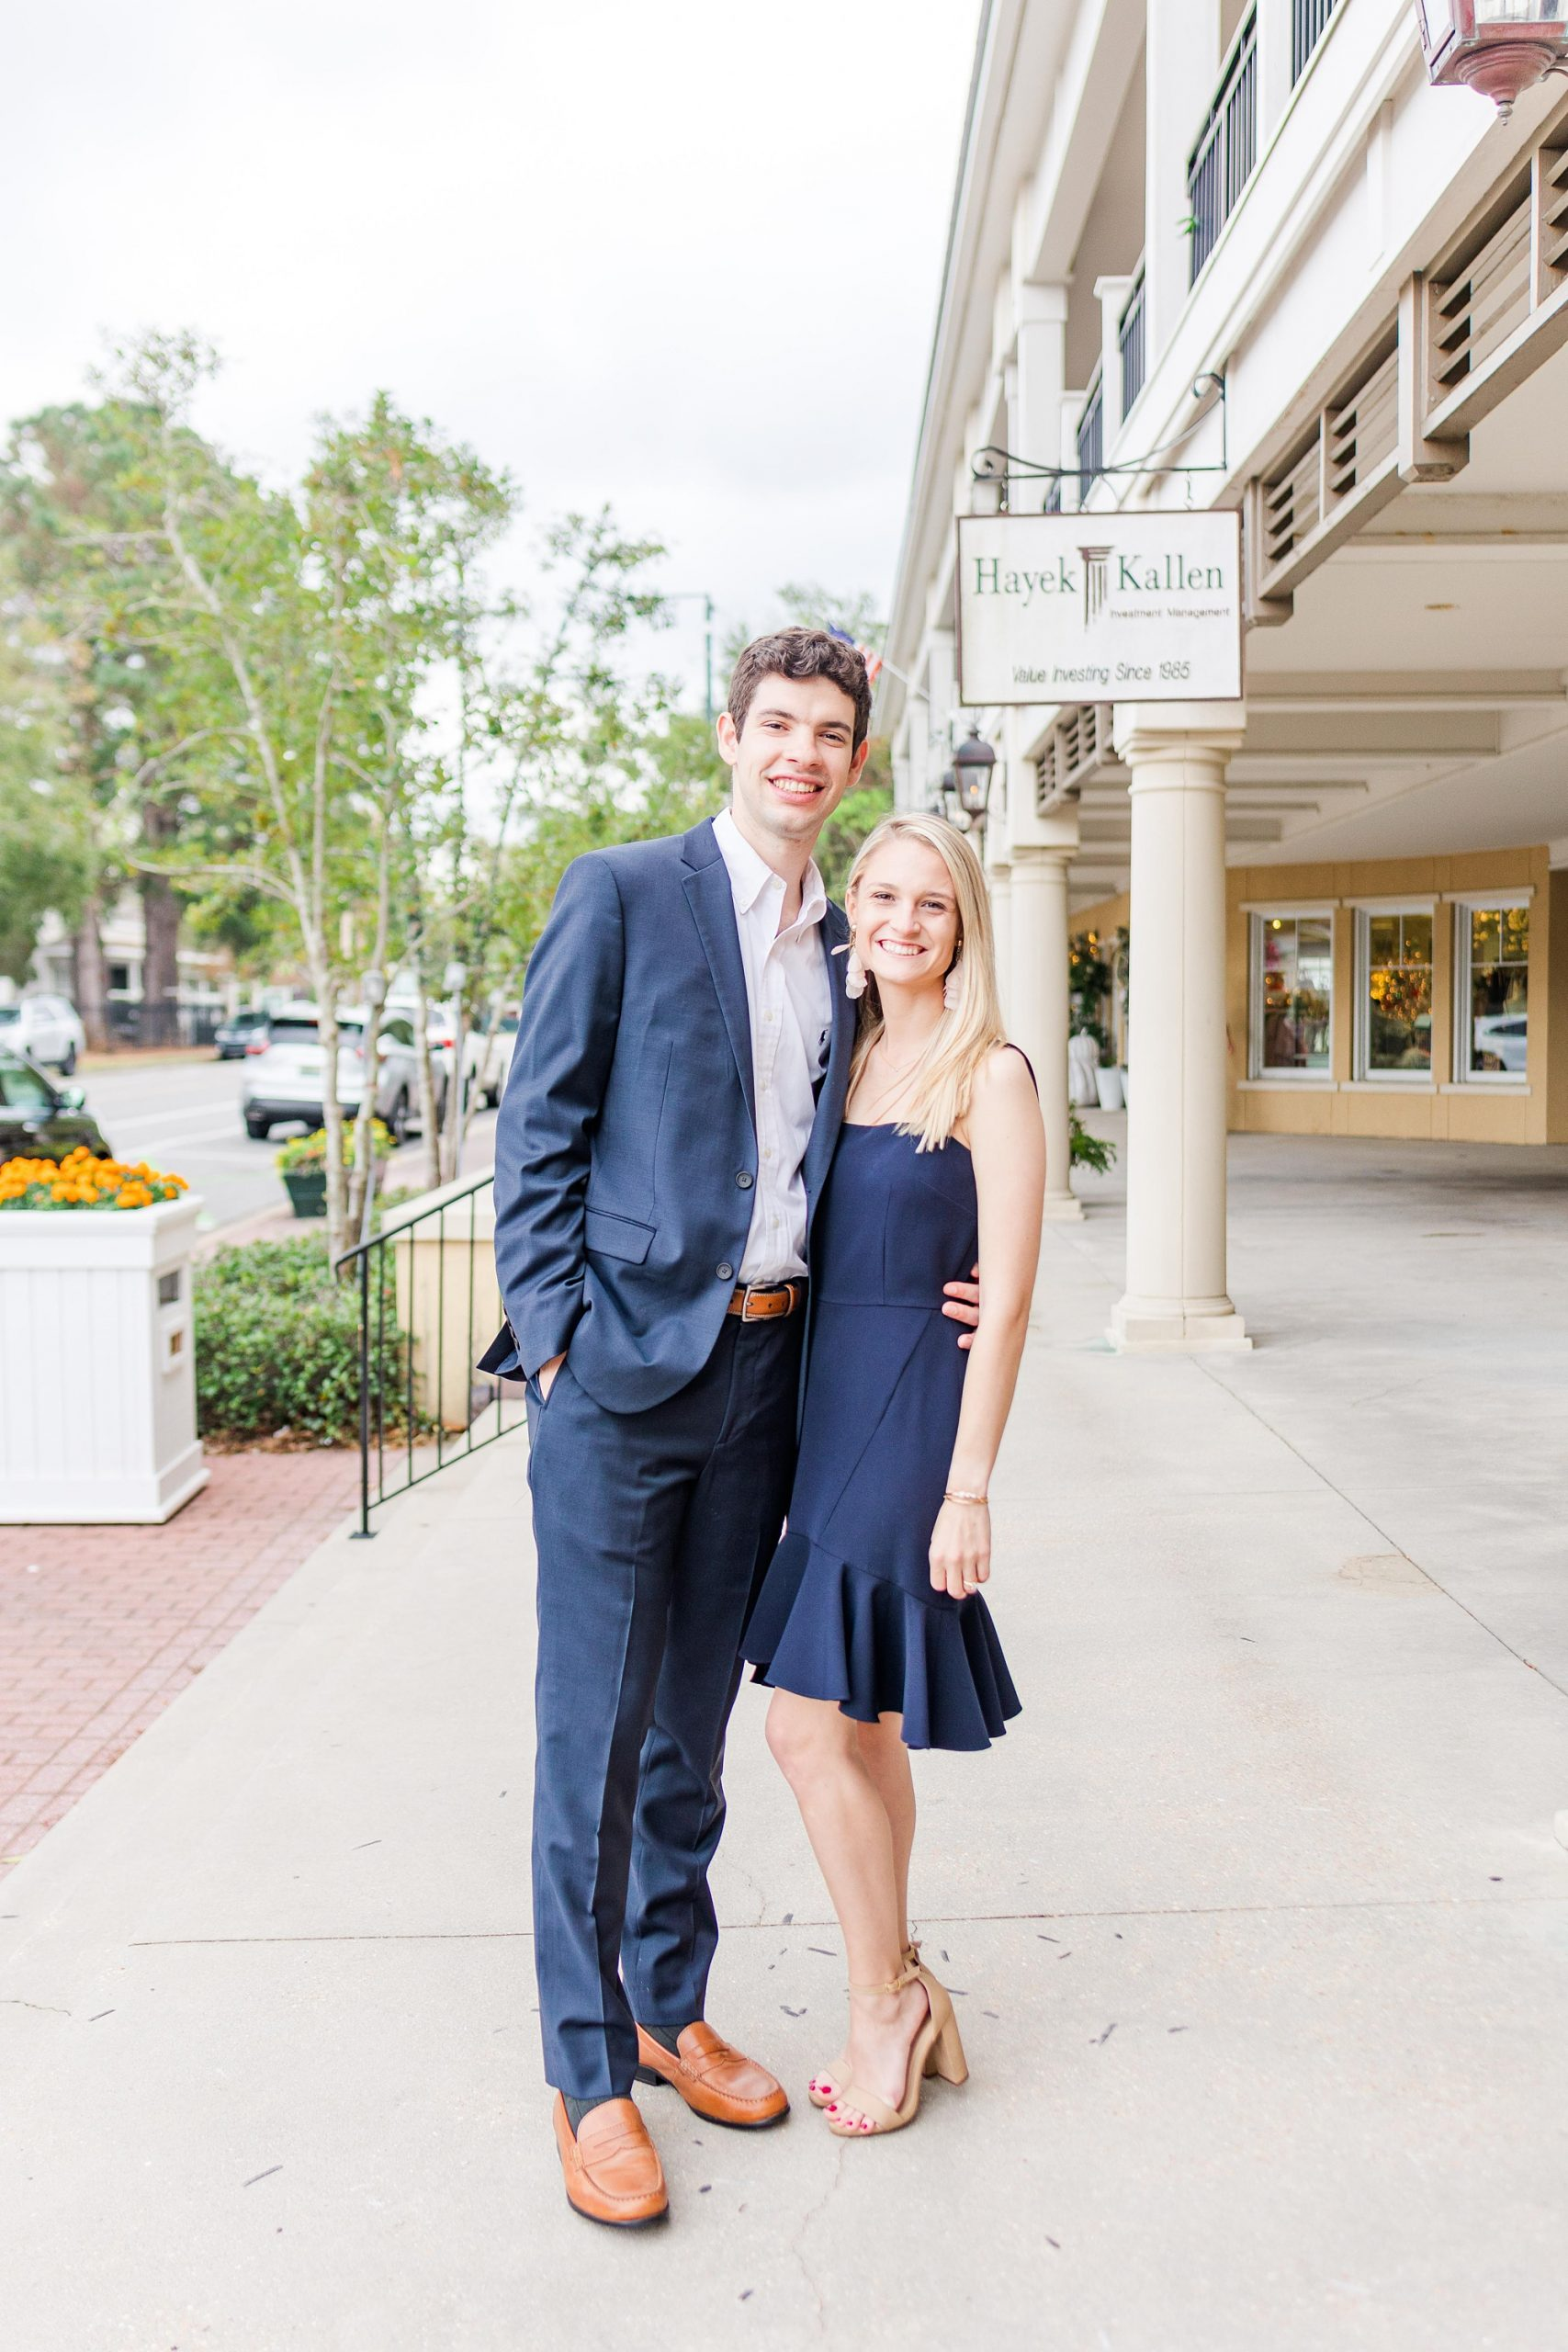 bride and groom pose on street in Alabama